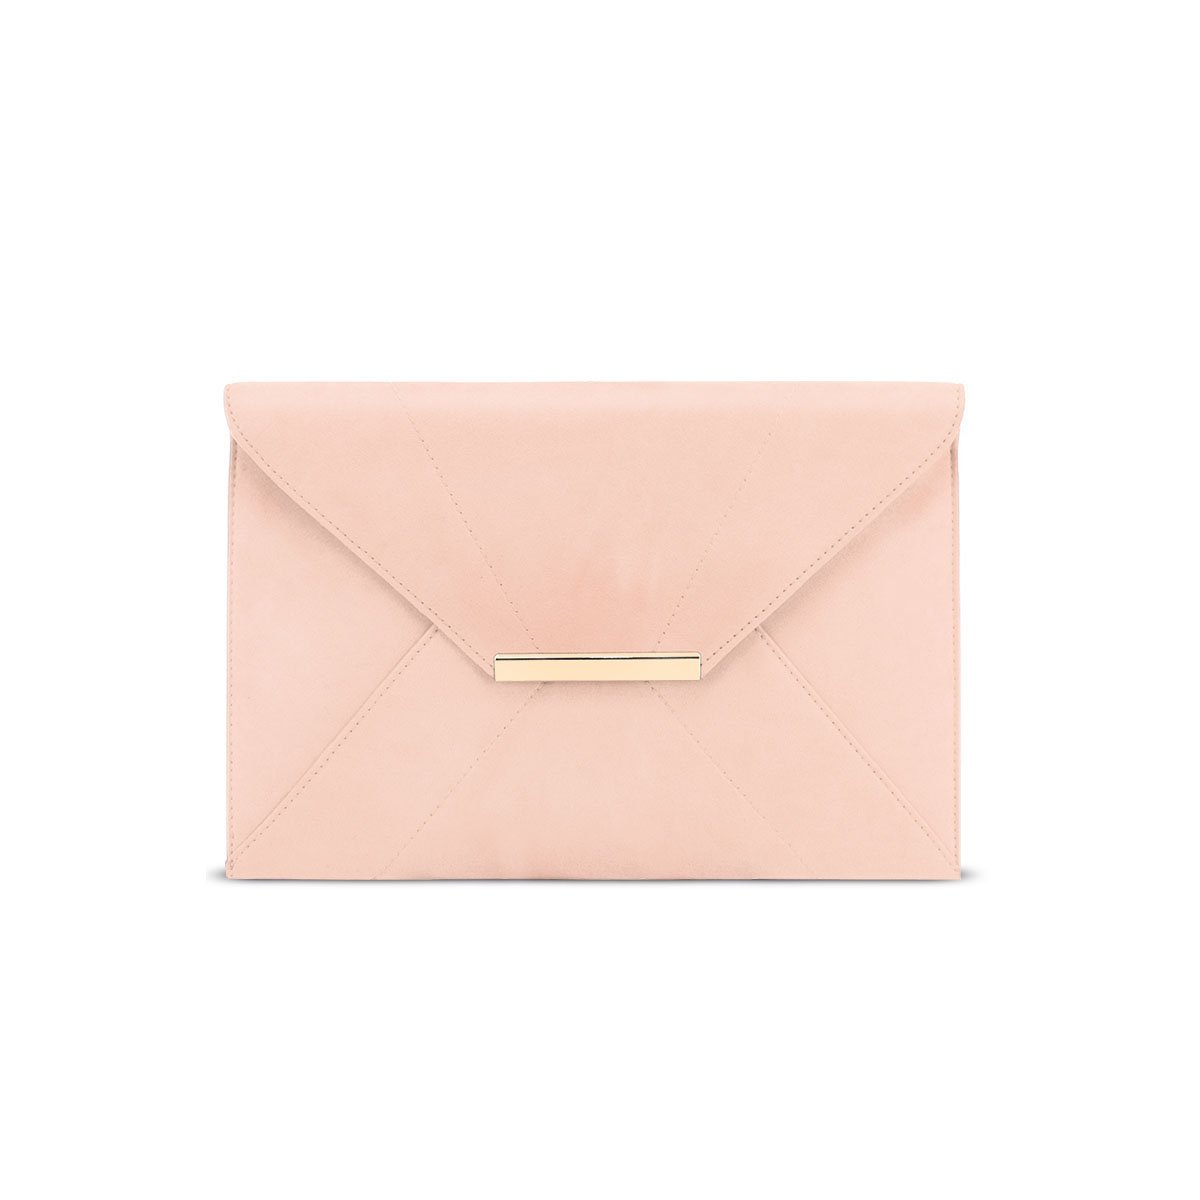 Clutch Purses for Women Evening,Anna Smith Ladies Envelope Clutch Evening Bag with Removable Chain Strap Wedding Prom Party Magnet Hook Faux Suede Handbag Purse with Pocket(Light Pink)